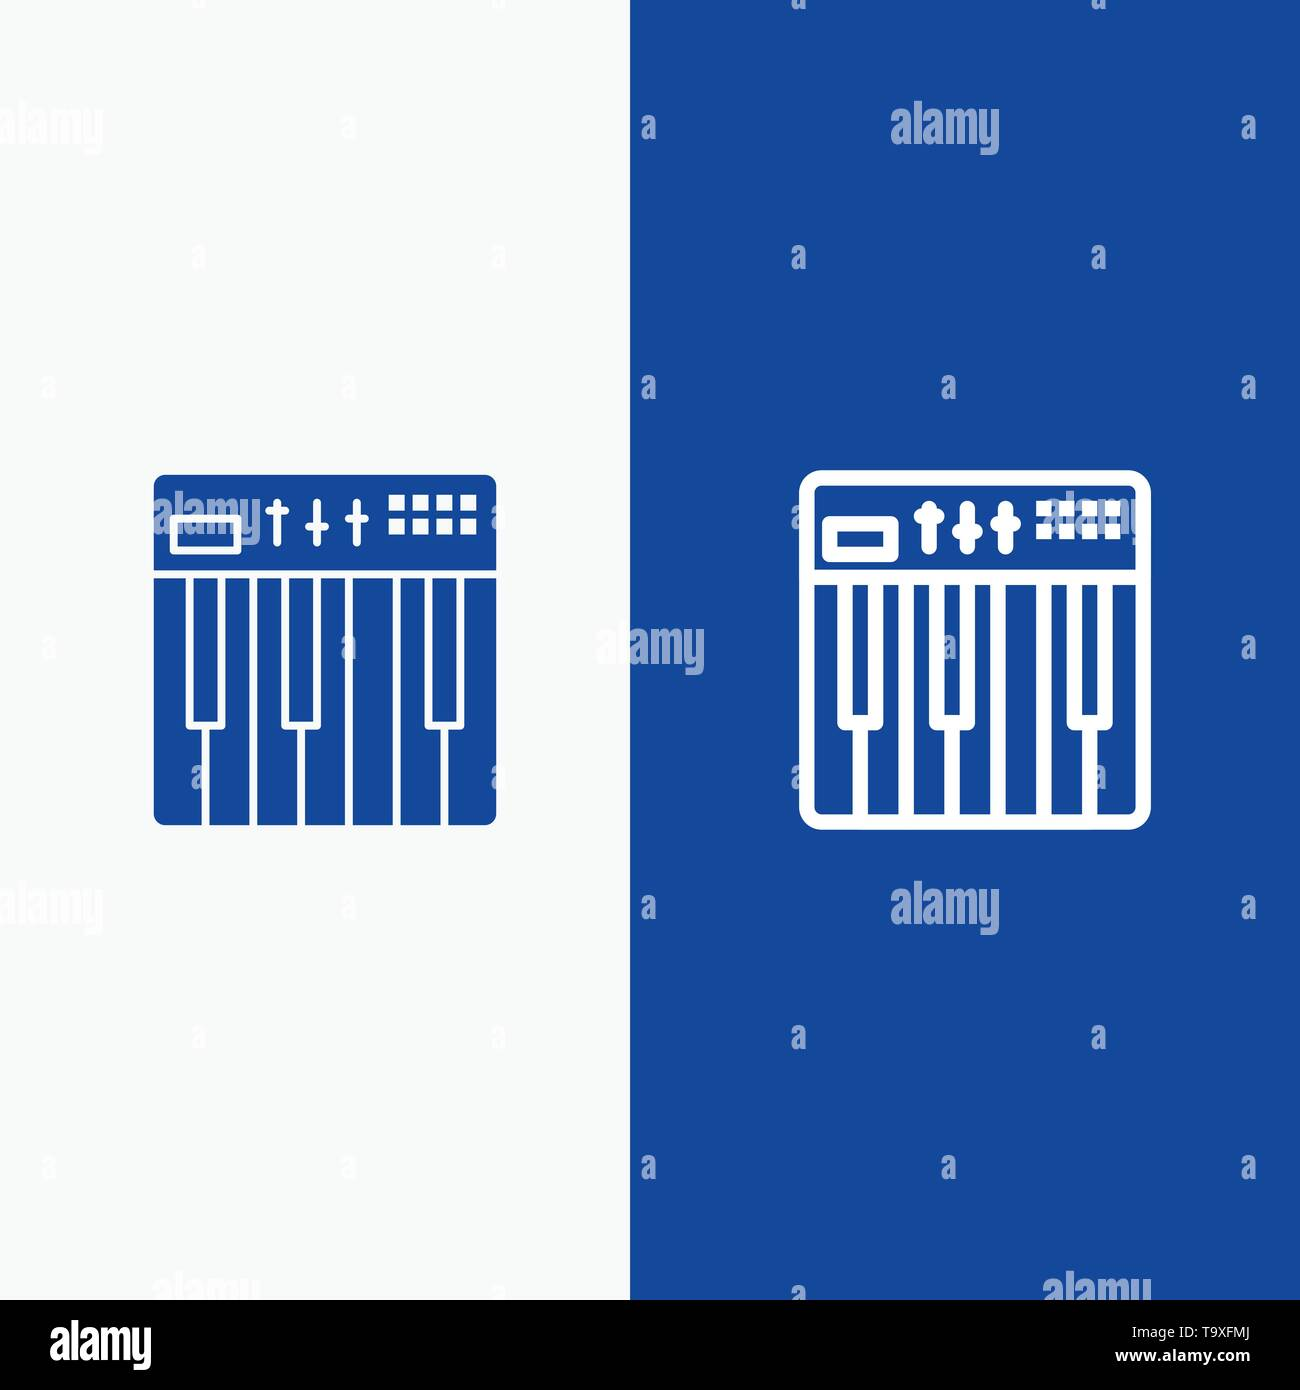 Controller, Hardware, Keyboard, Midi, Music Line and Glyph Solid icon Blue banner Line and Glyph Solid icon Blue banner - Stock Image